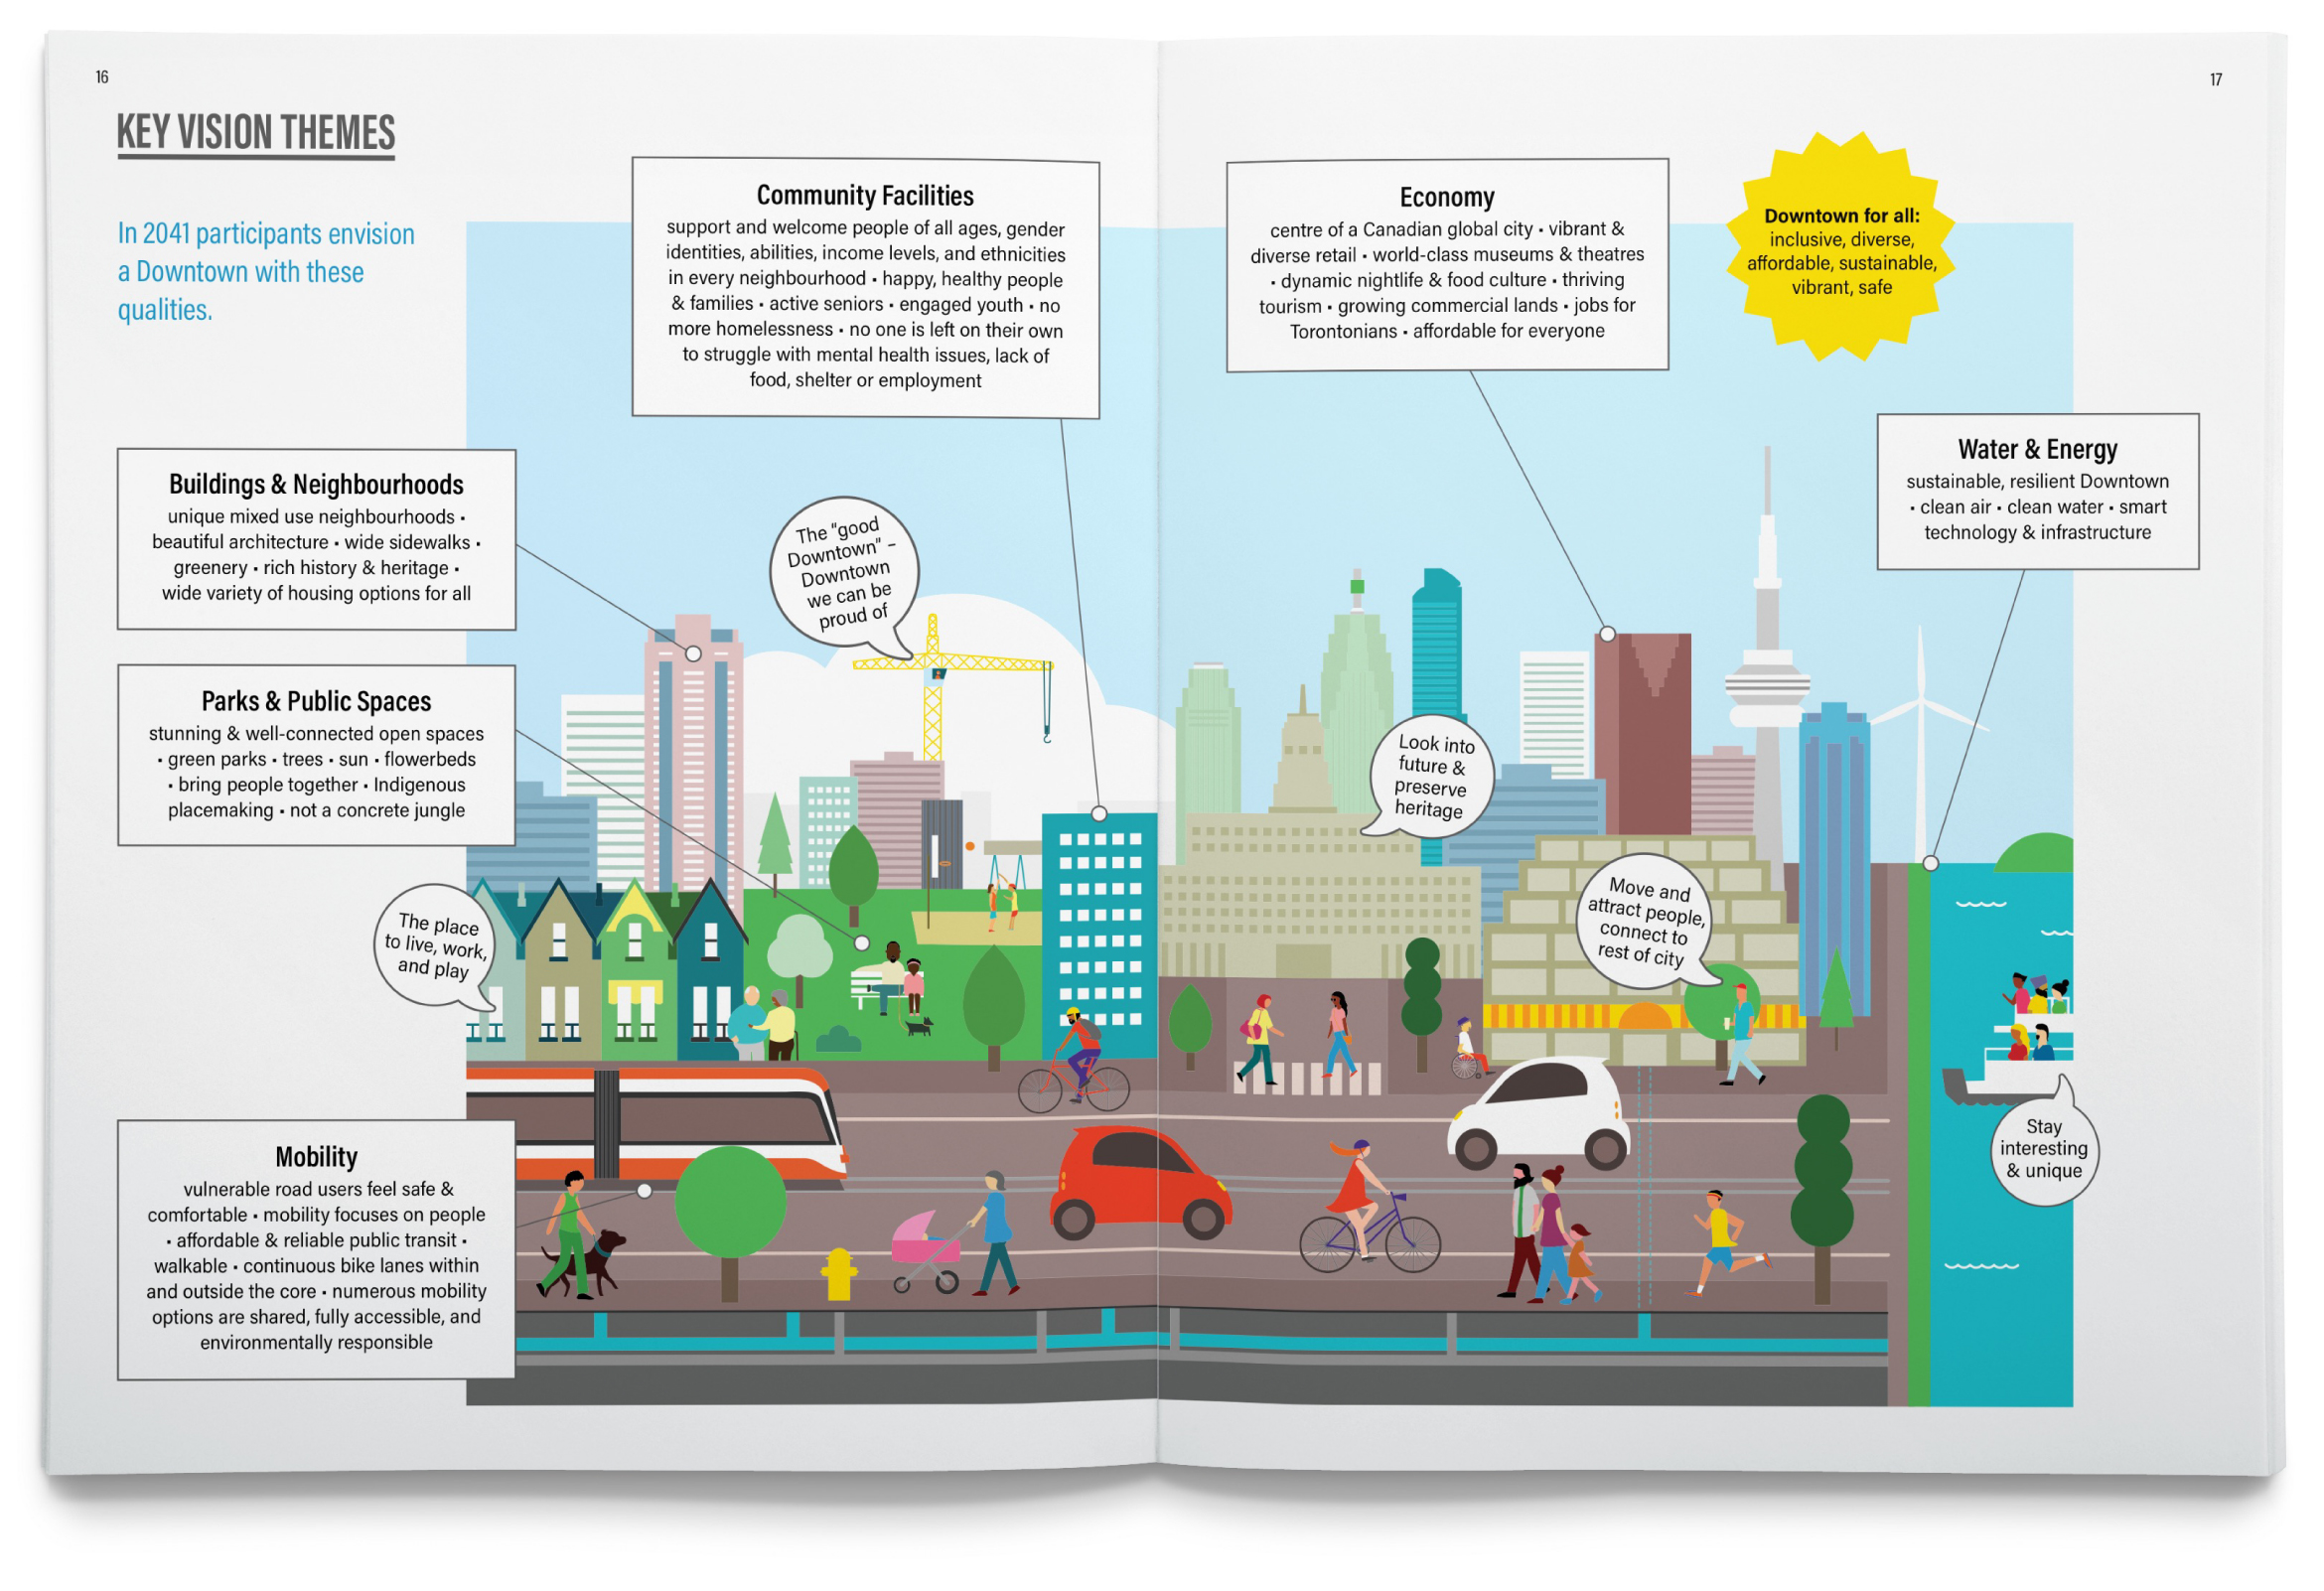 Spread of the TOcore Engagement report that features key vision themes, an illustration of downtown by Nash Dsouza, and annotations that describe the qualities that participants envision for a Downtown in 2041.